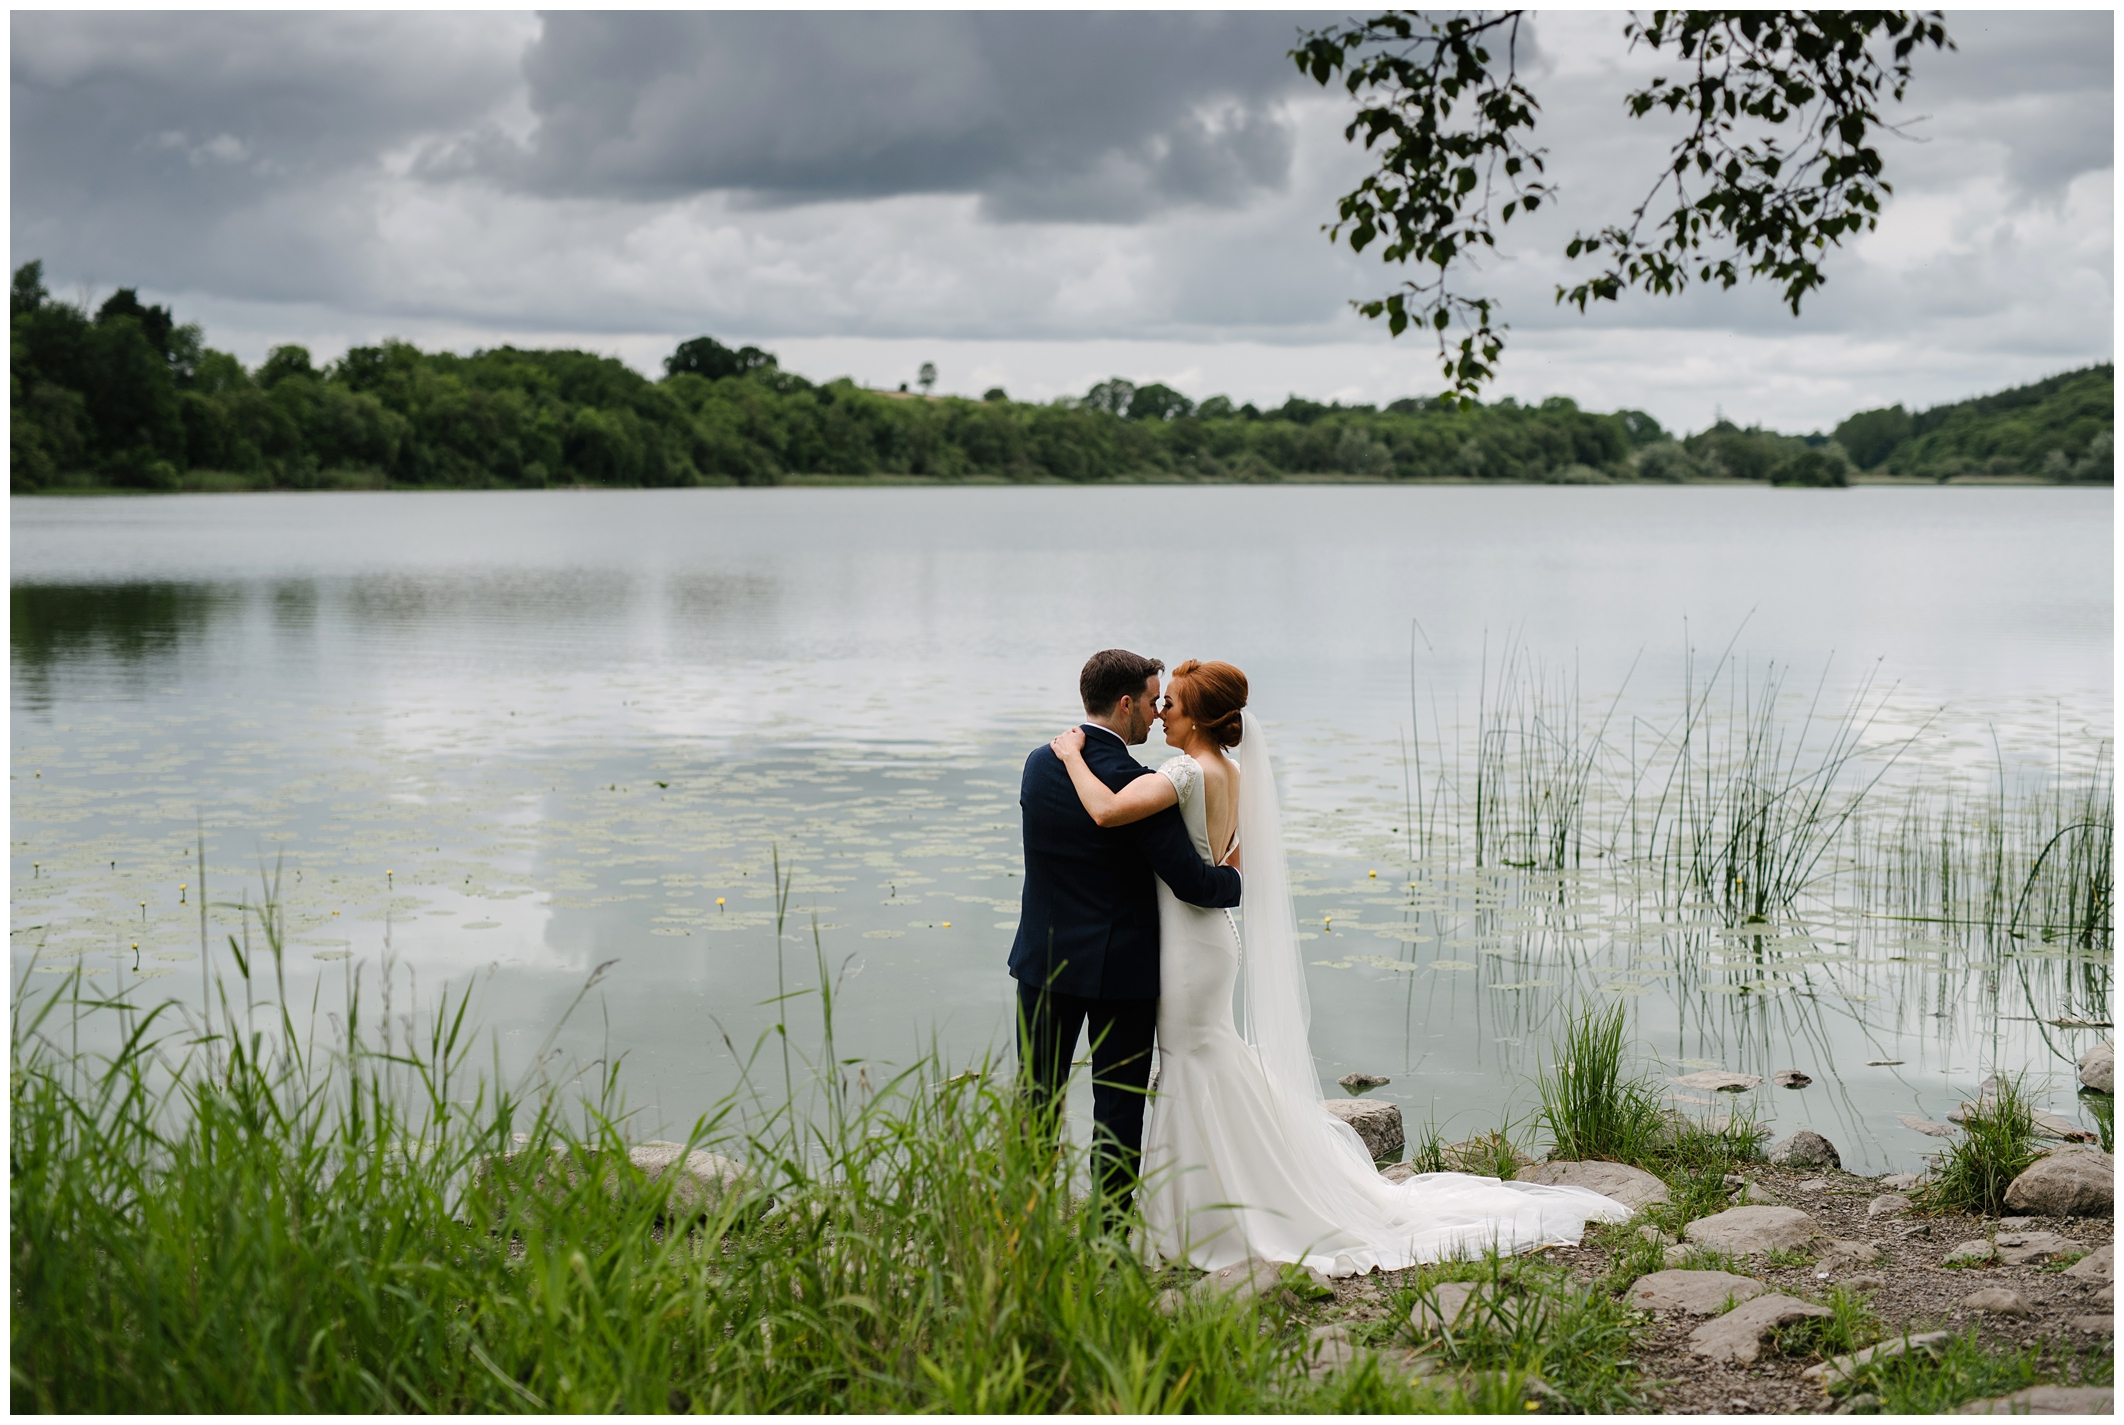 sinead_emmet_farnham_estate_wedding_jude_browne_photography_0128.jpg